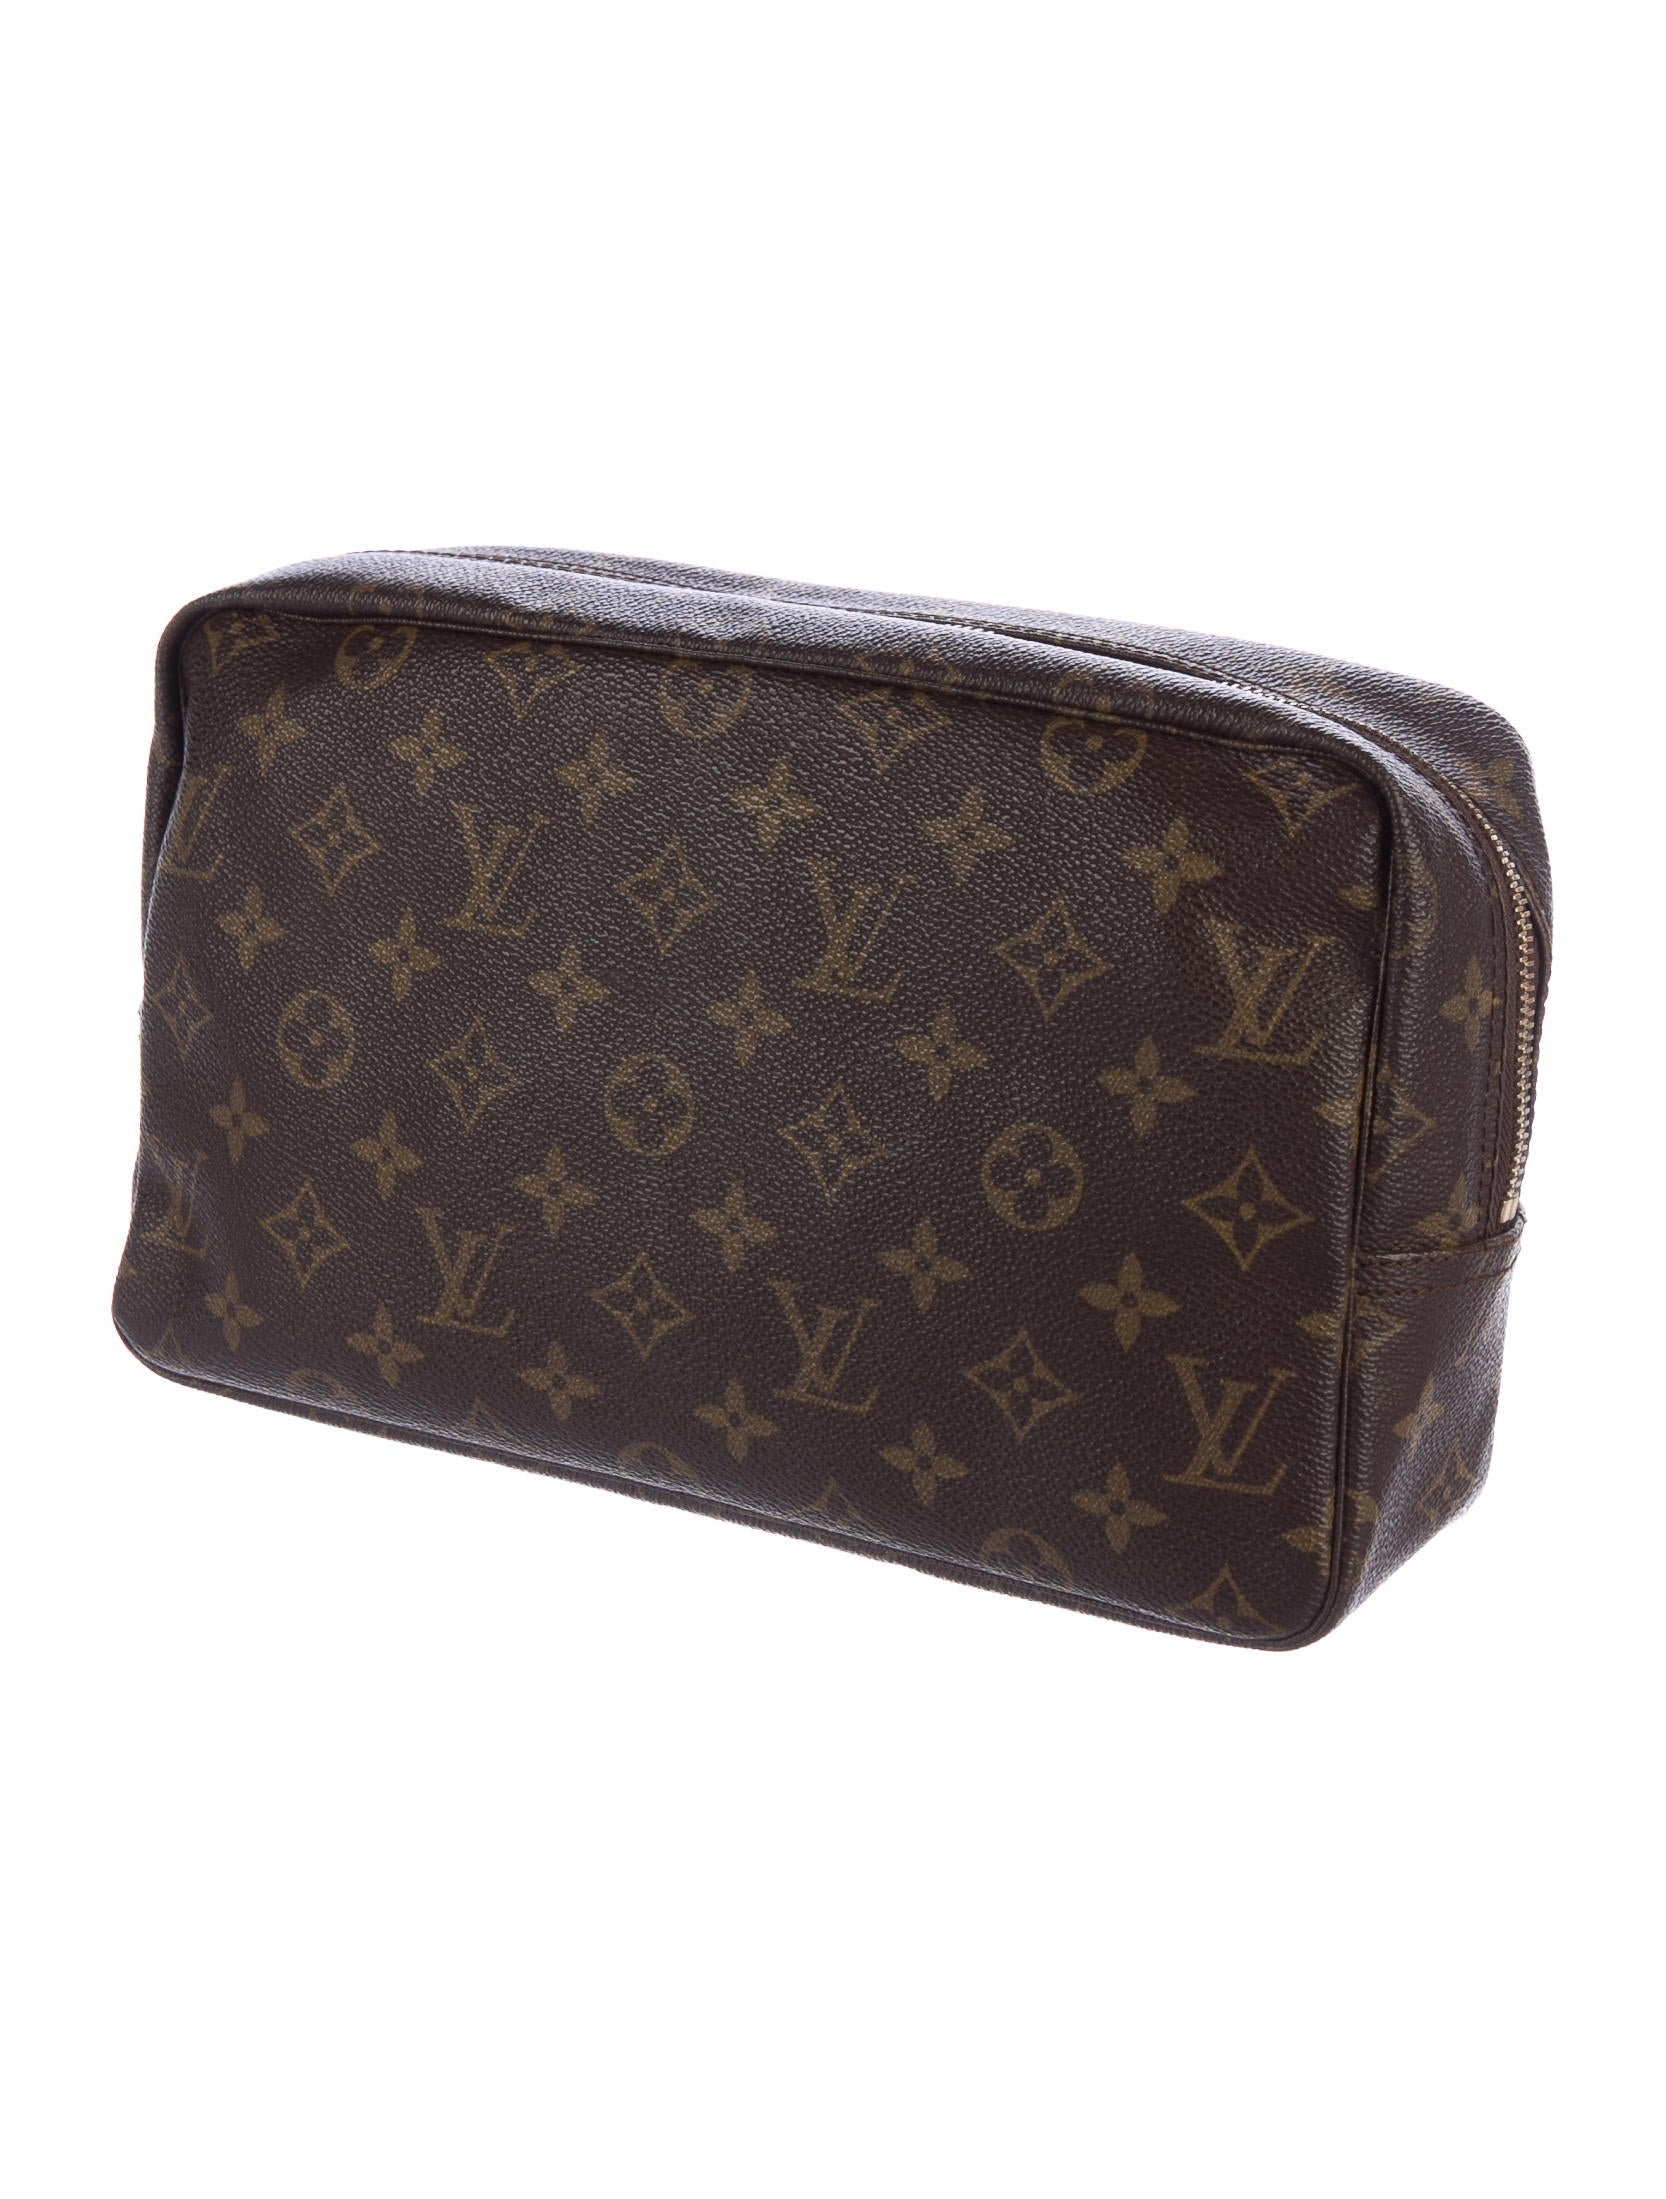 louis vuitton vintage monogram trousse toilette 28. Black Bedroom Furniture Sets. Home Design Ideas